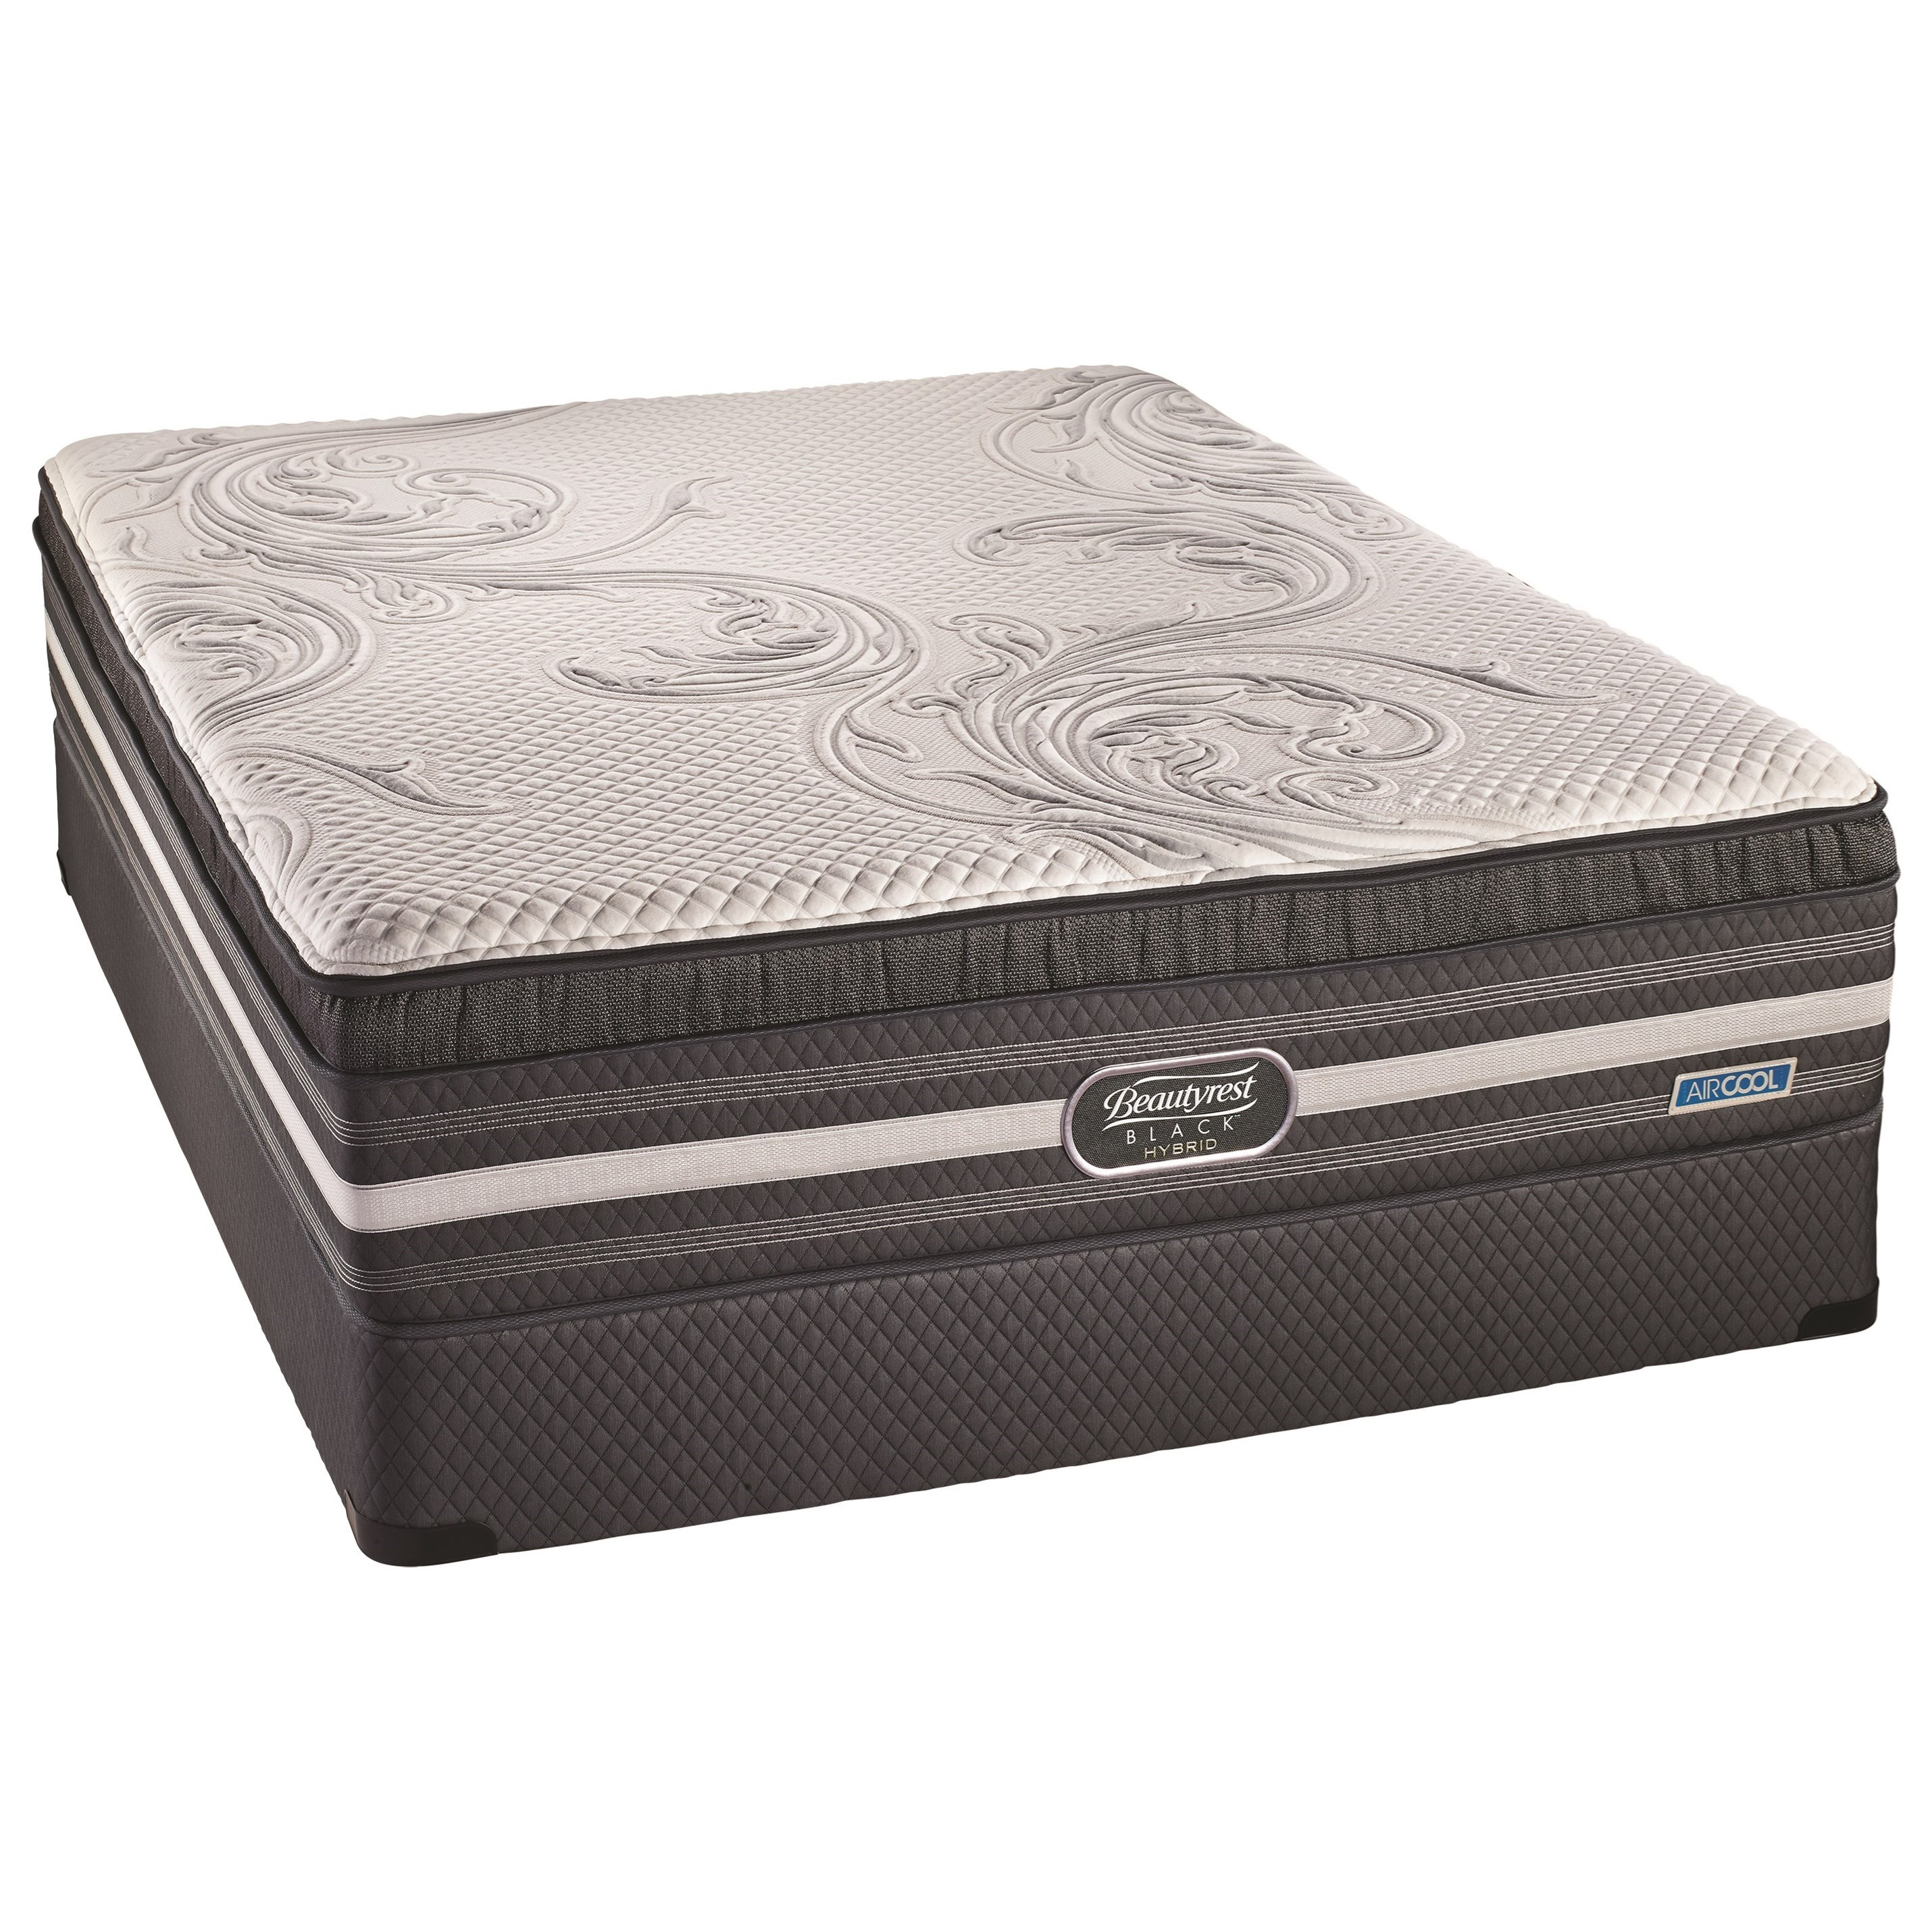 BR Black Hybrid Williams CT Plush Queen Comfort Top Plush Hybrid Mattress Set by Beautyrest Canada at Jordan's Home Furnishings